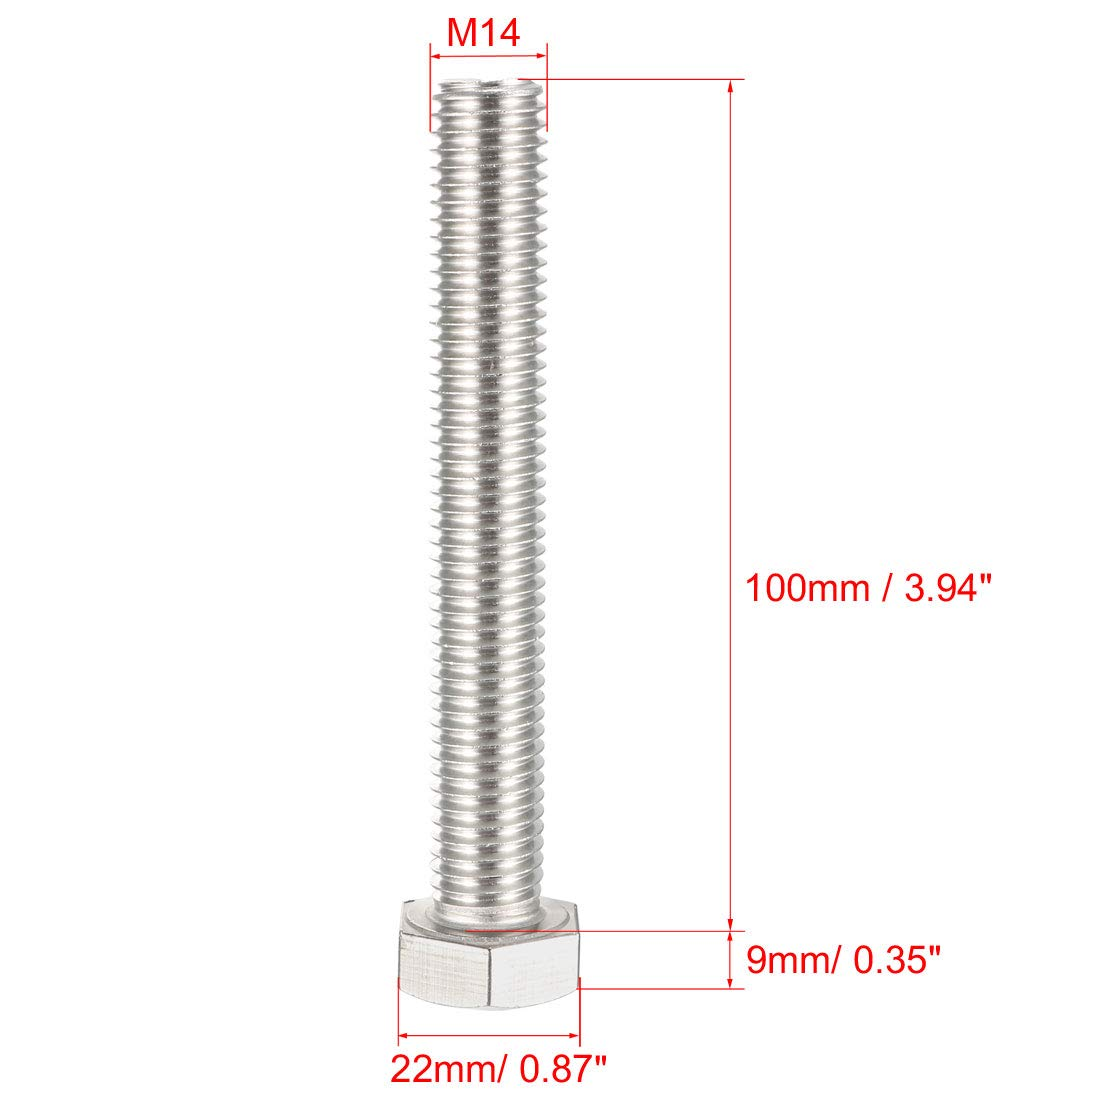 uxcell M10 Thread 65mm 304 Stainless Steel Hex Head Screw Bolts Fastener 5pcs